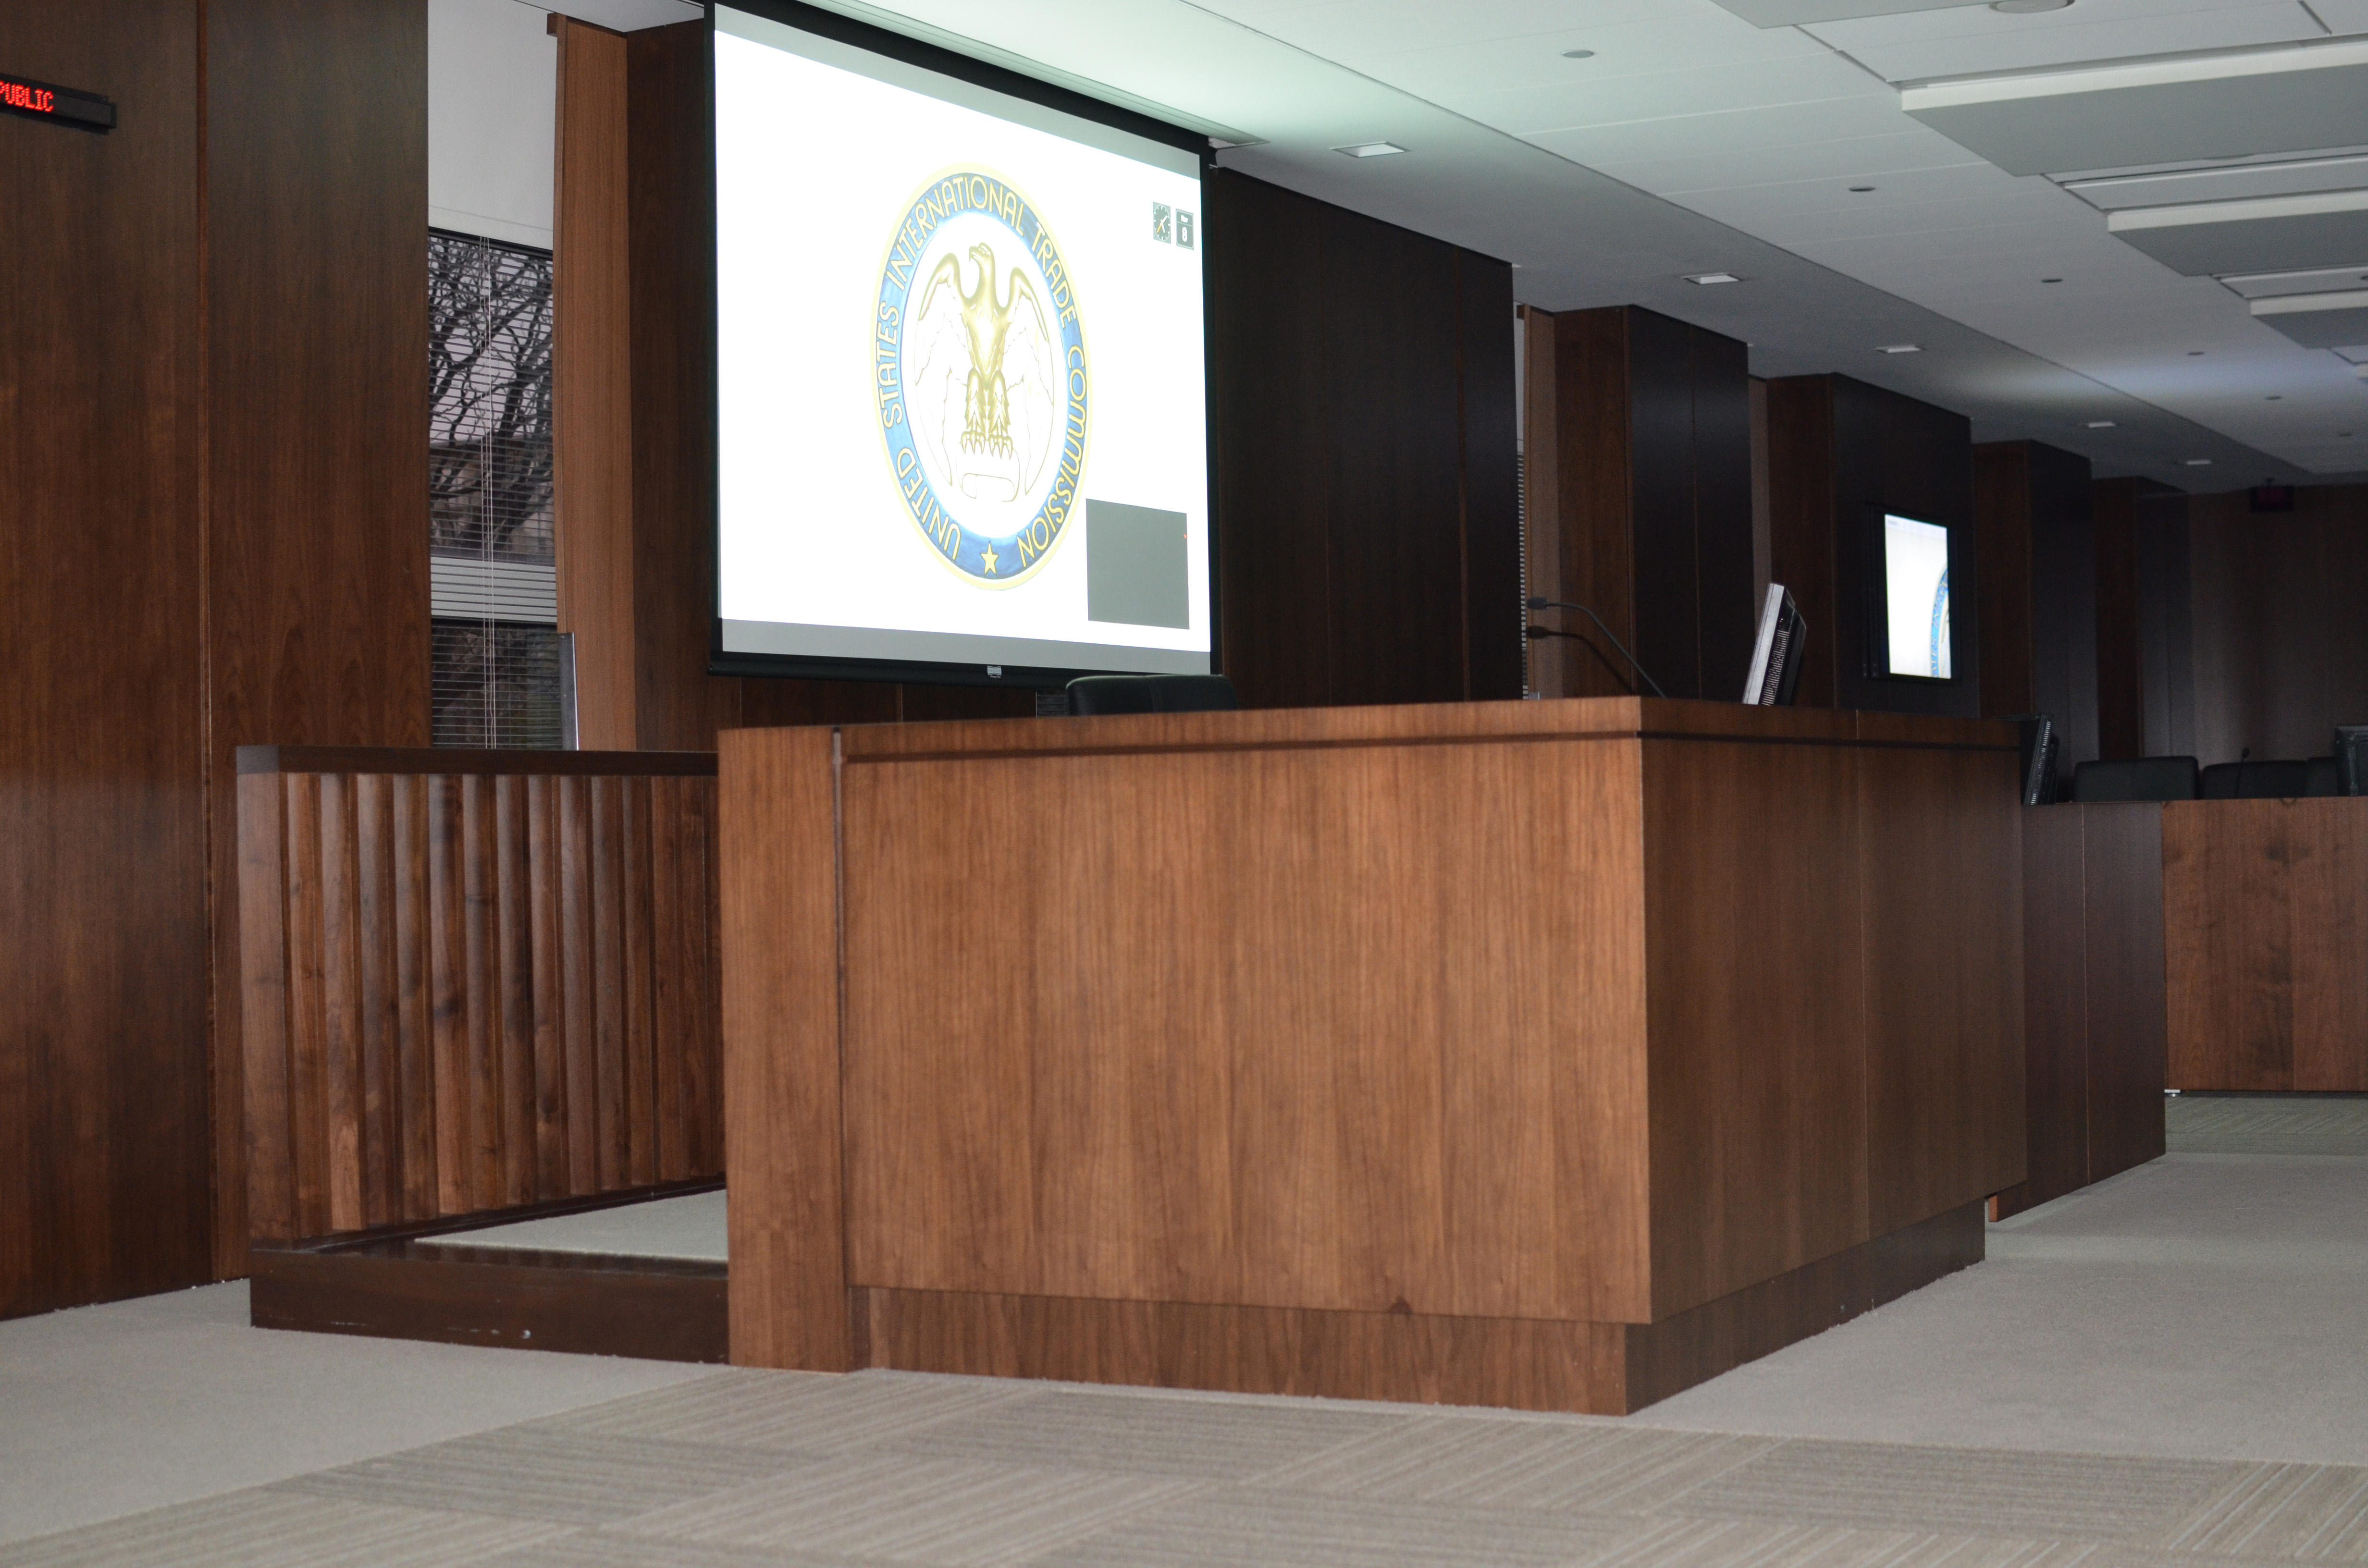 Desk-mounted and wall-hung presentation screens around the room ensure that all participants have clear access to materials under discussion.  Automated window screens help protect confidential business information by ensuring that individuals outside the courtroom cannot view the proceedings when they are closed.